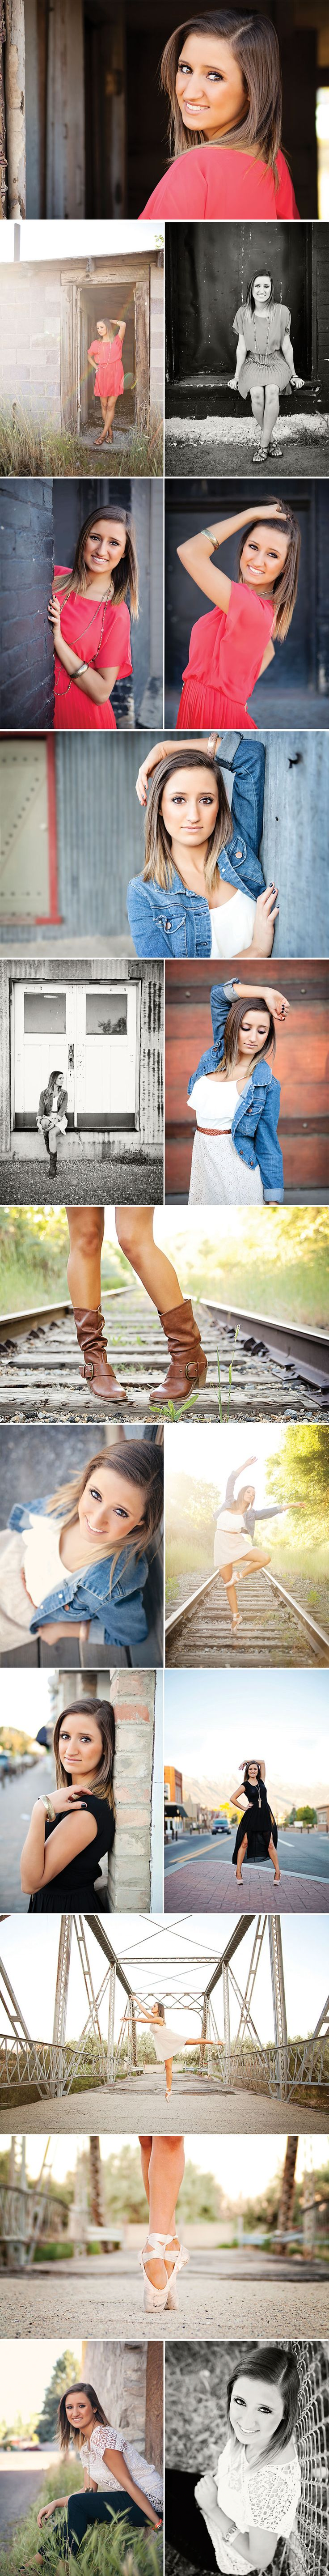 Chelsea Peterson Photography:{Utah County High School Senior Photographer}